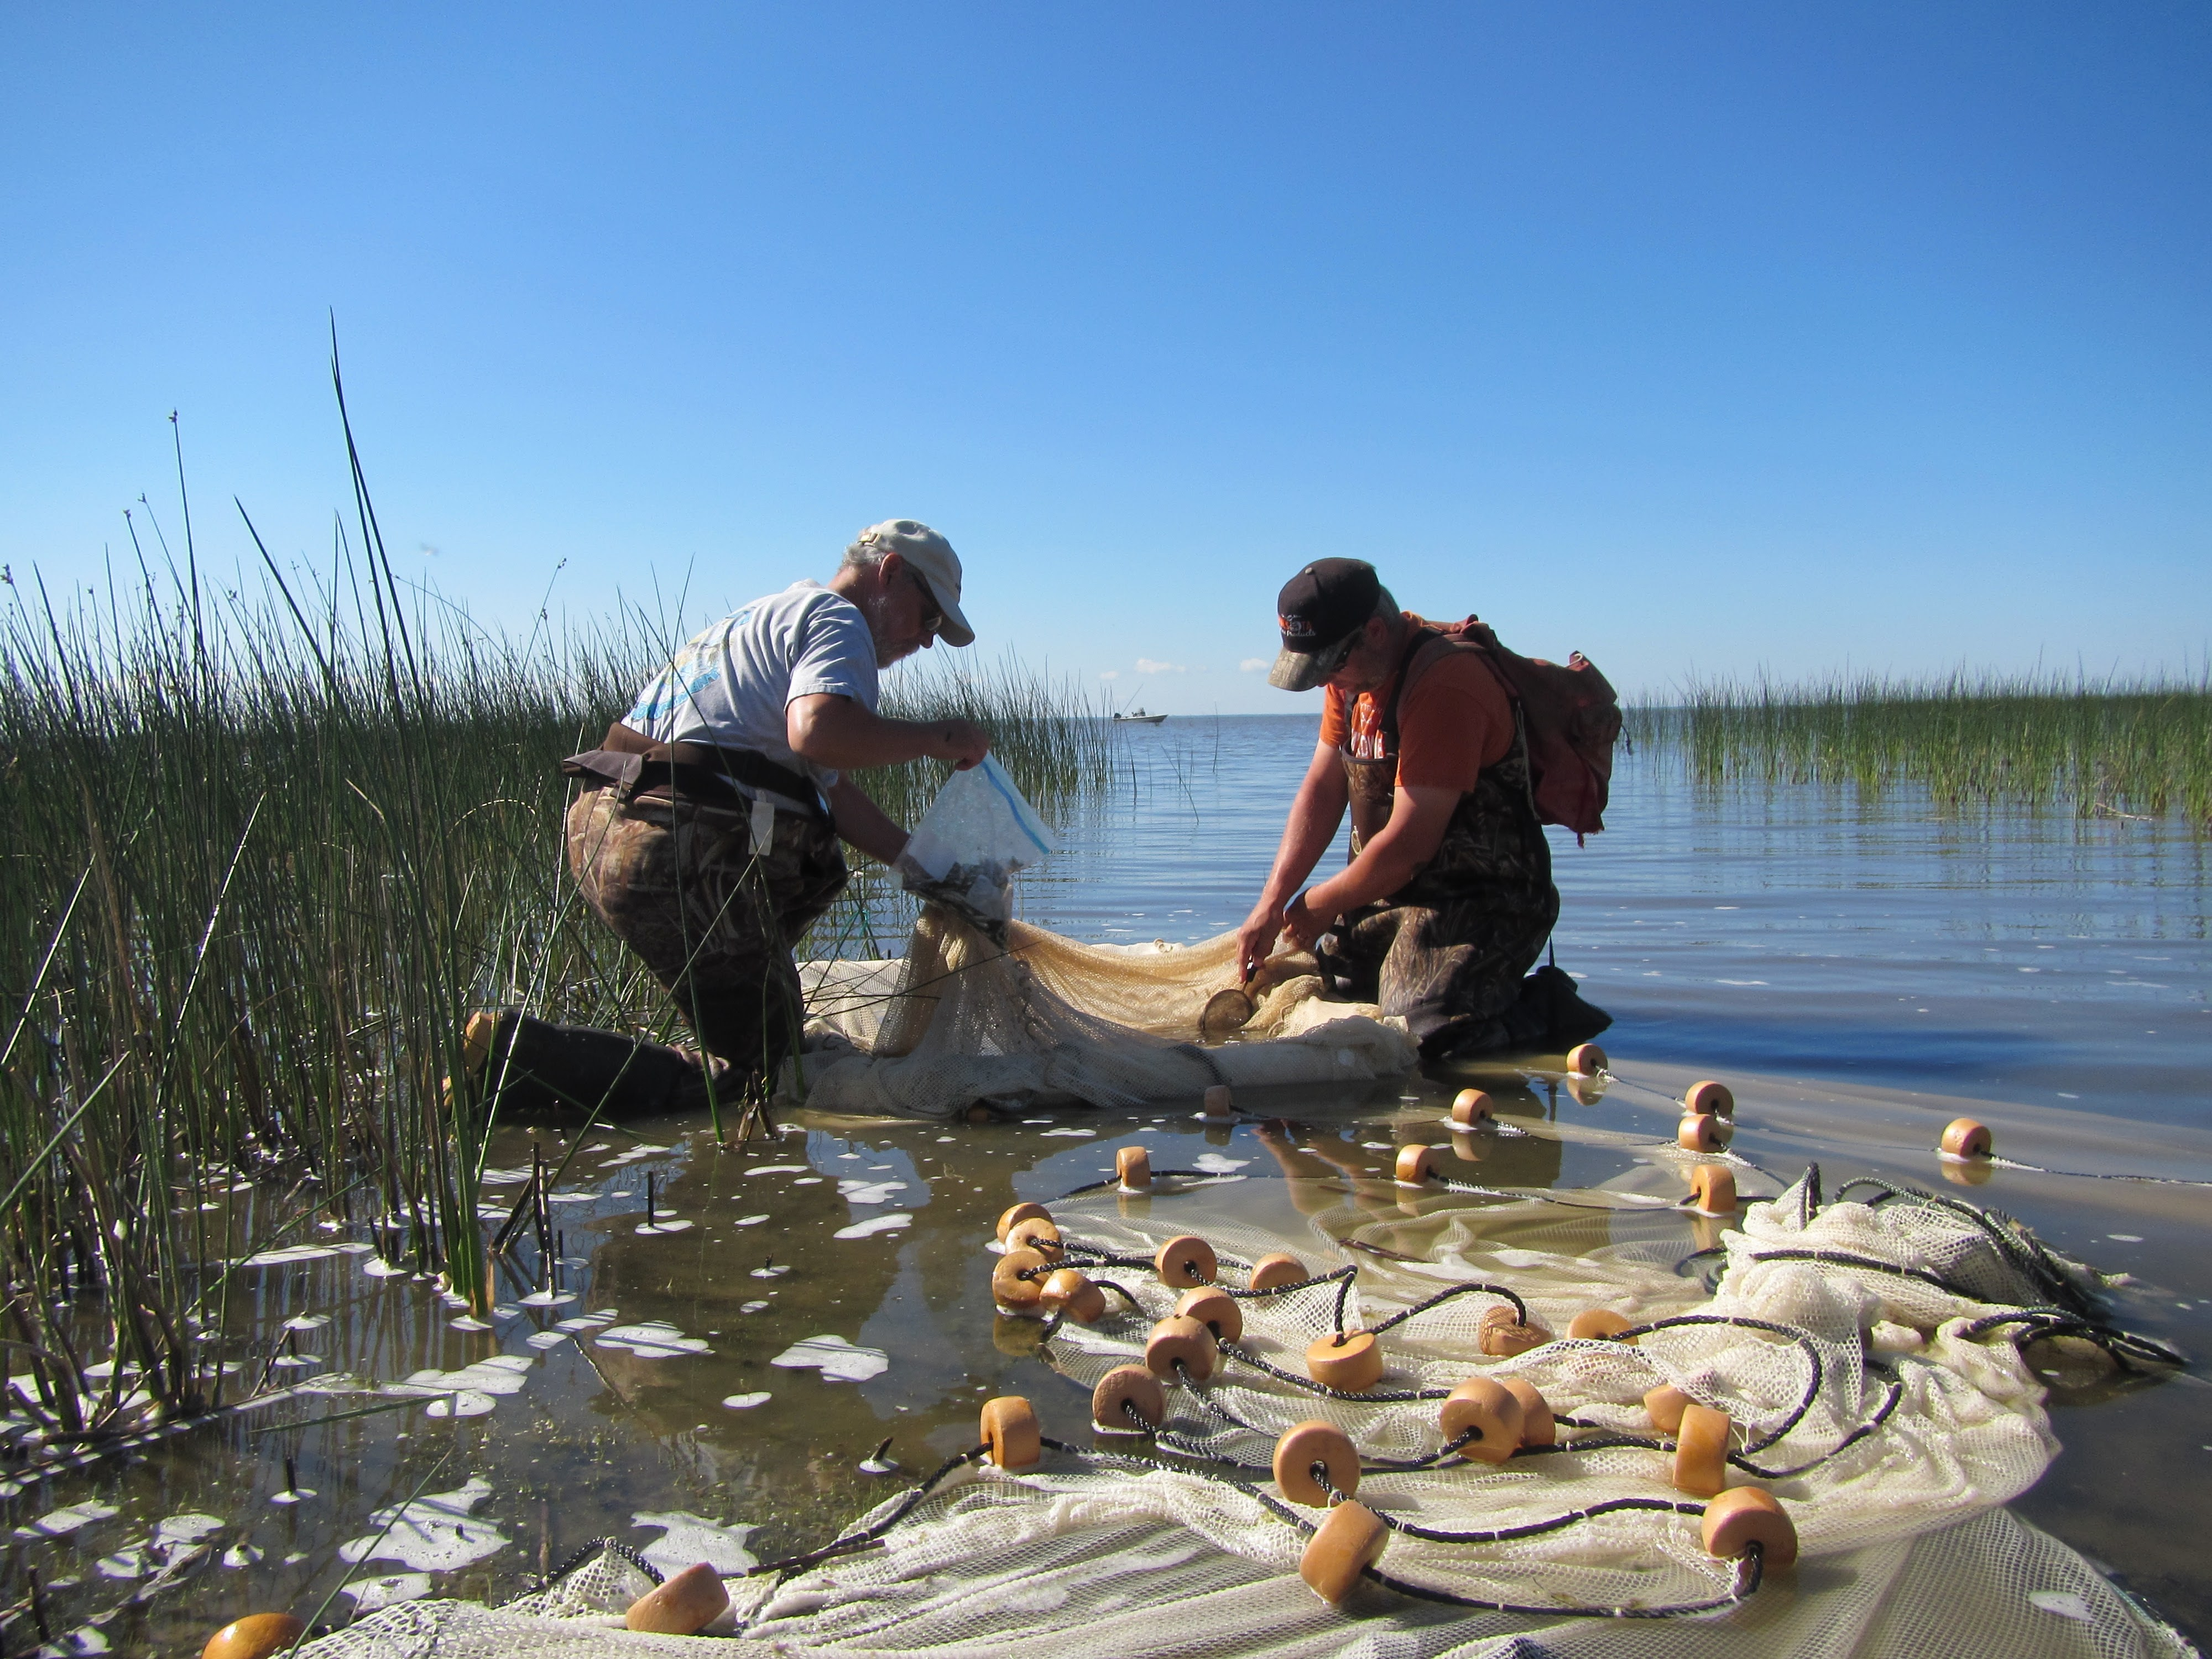 Field work on Red Lake. Two researchers are gathering materials in a large net.